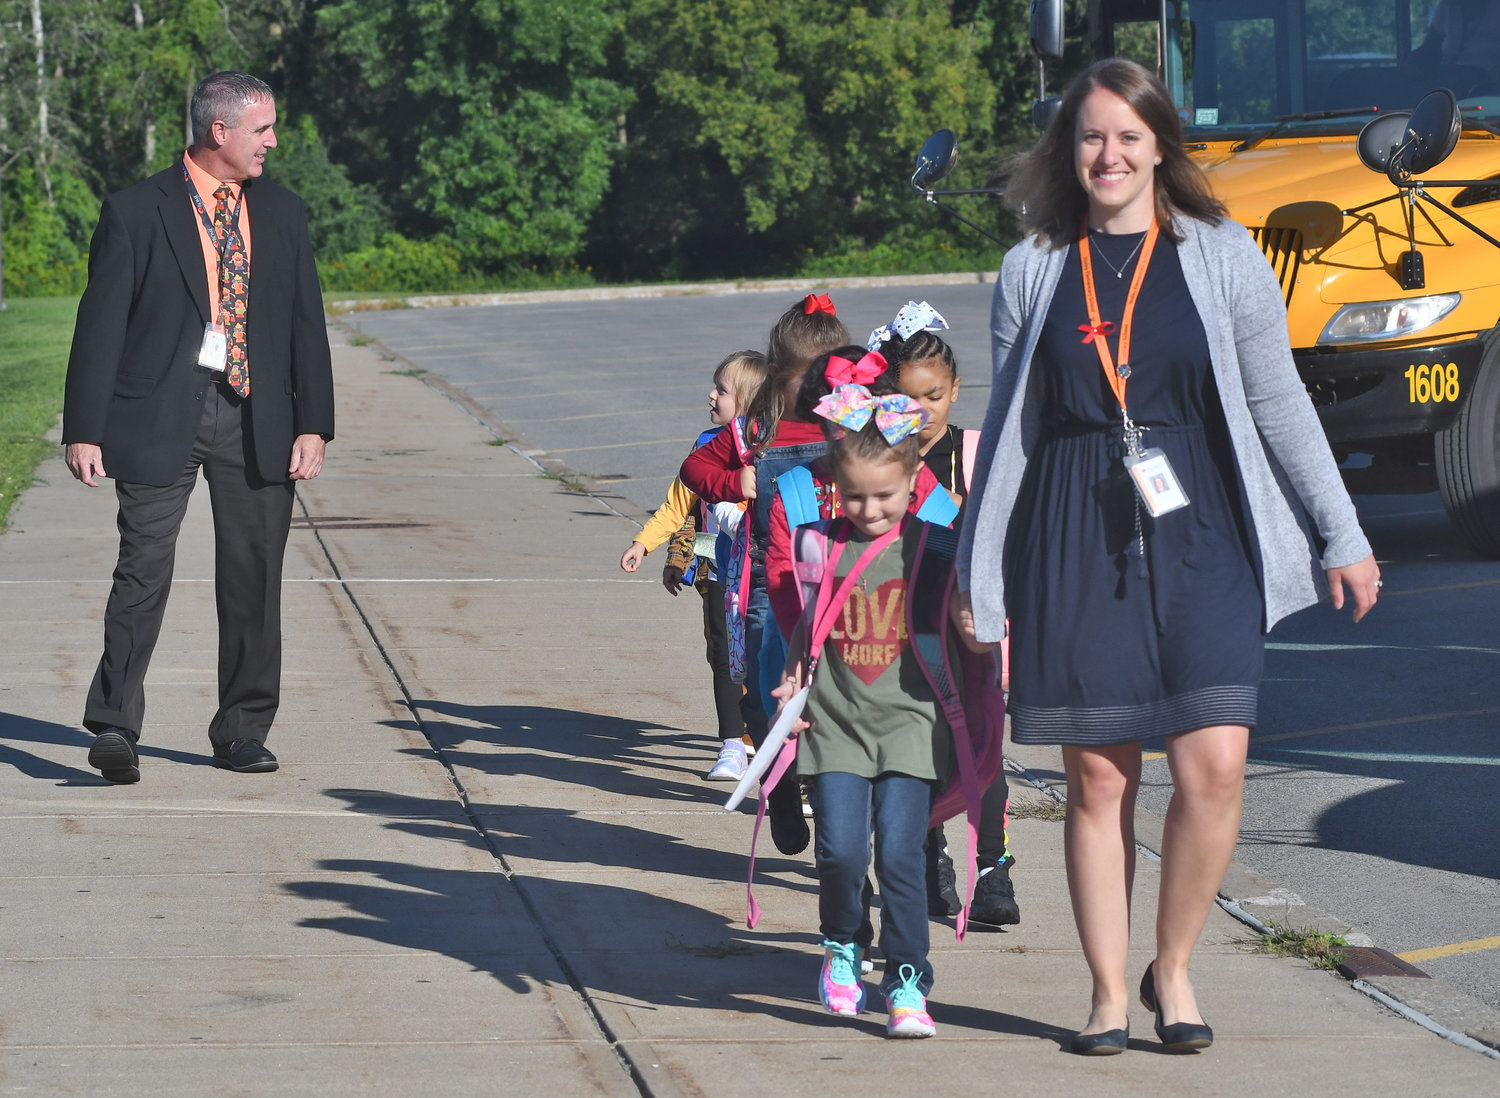 THIS WAY TO STALEY— Staley Elementary School teacher Mackenzie Welter leads her children to the school this morning for the first day of classes after they departed buses. At left is new Staley Principal Michael Davis, speaking to one of her students.